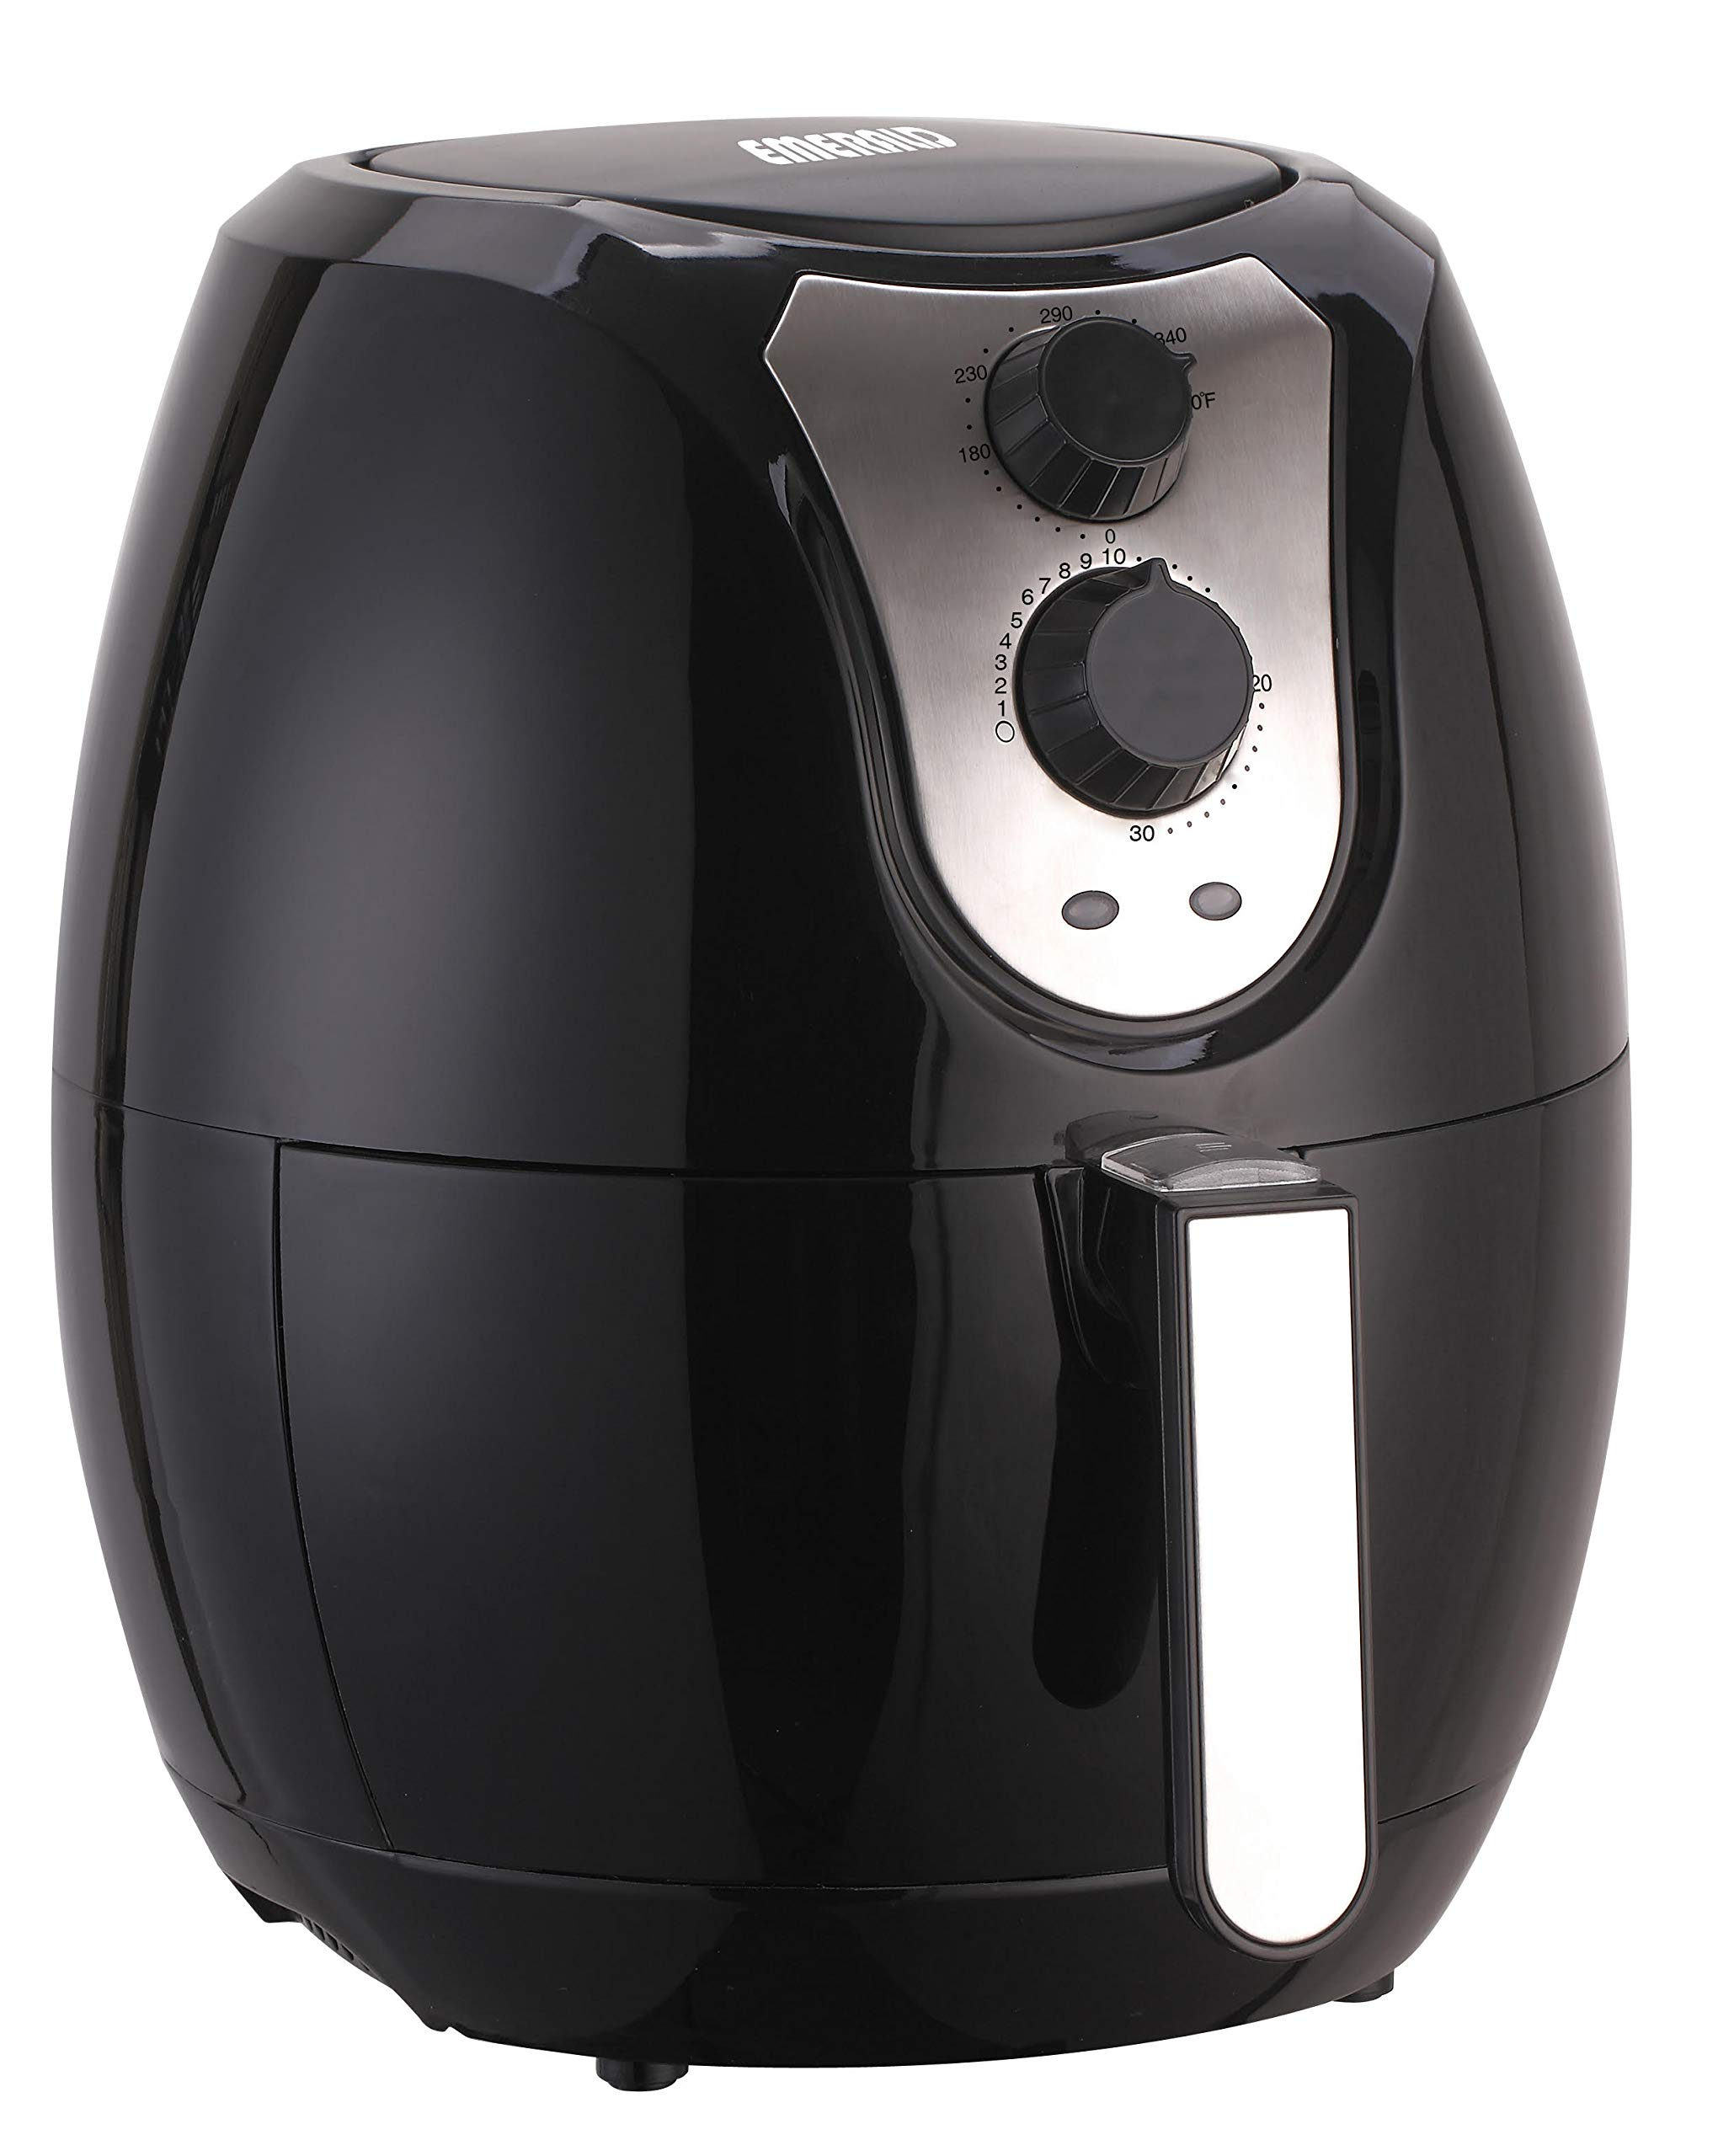 Emerald Air Fryer with Rapid Air Technology 3.2L Capacity (1801)